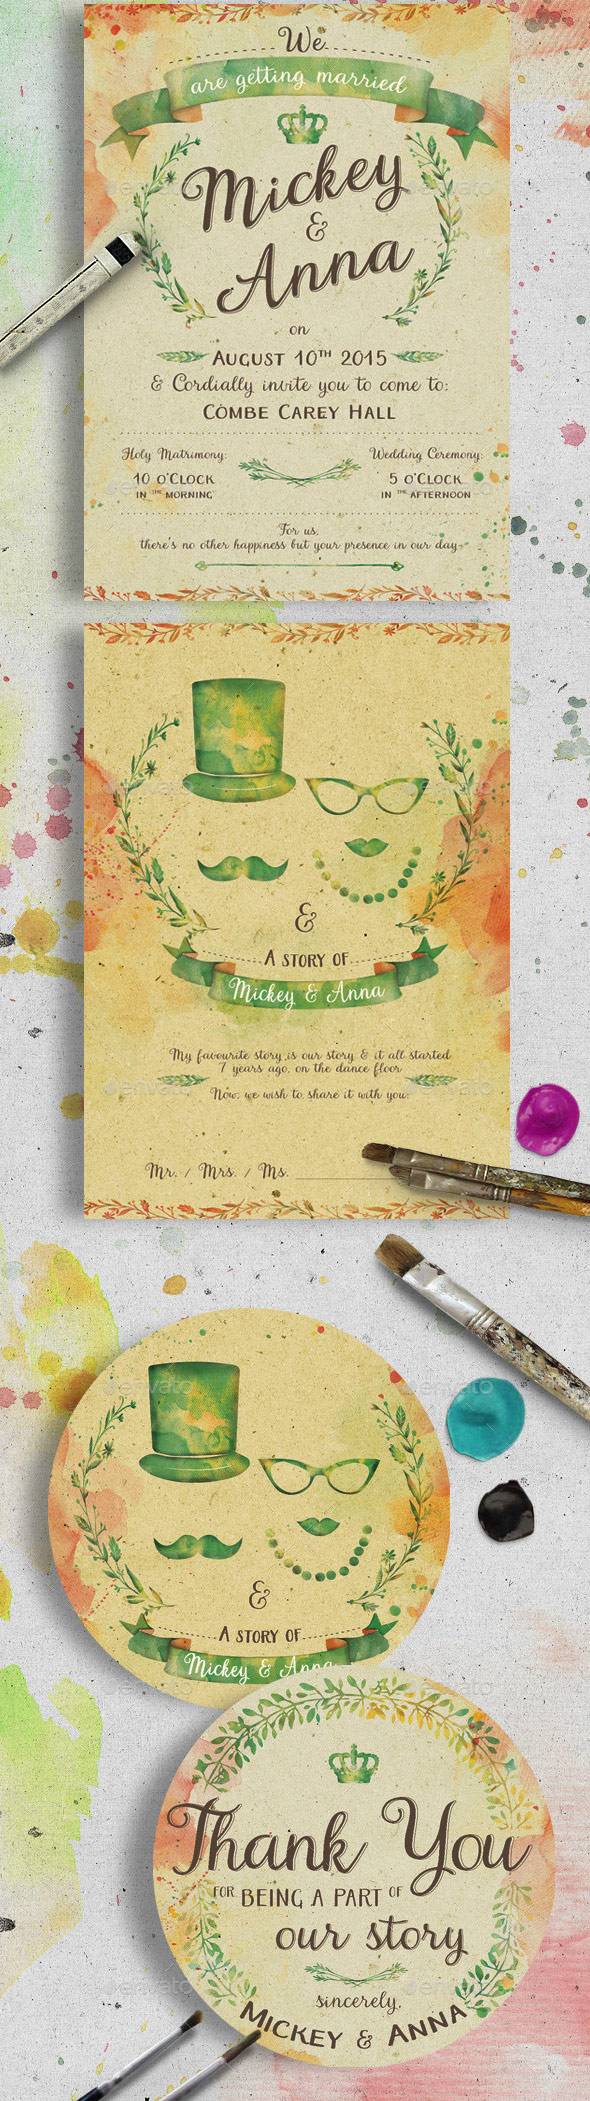 Watercolor-Wedding-Invitation-PSD-Set